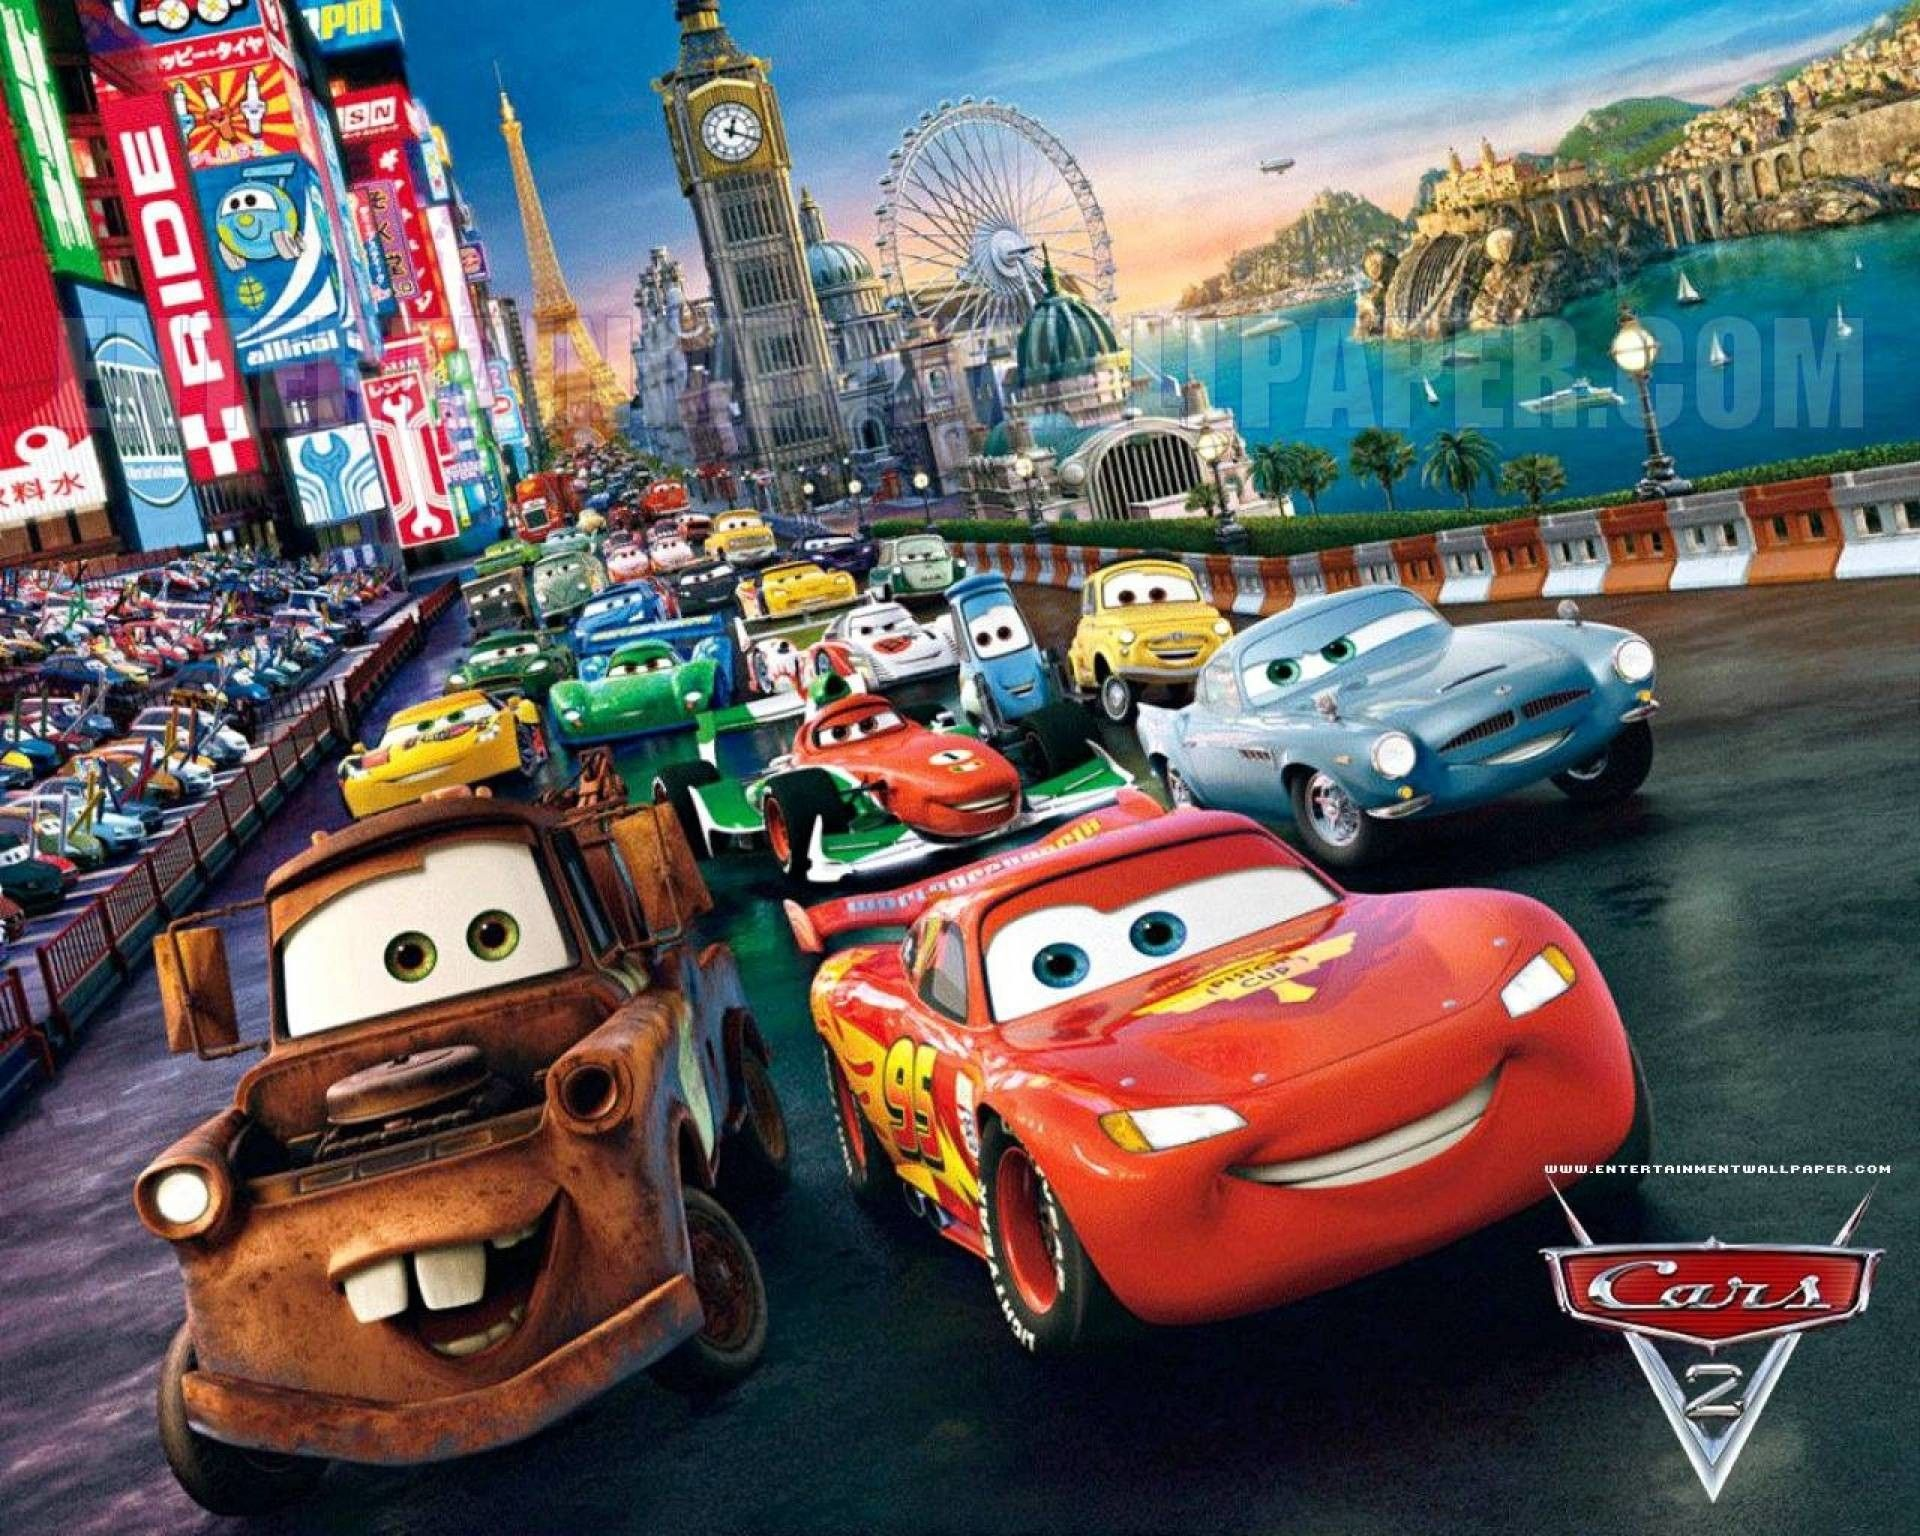 Trends For Lightning Mcqueen Wallpaper Disney Cars Photos In 2020 Cars Cartoon Disney Disney Cars Wallpaper Cars Movie